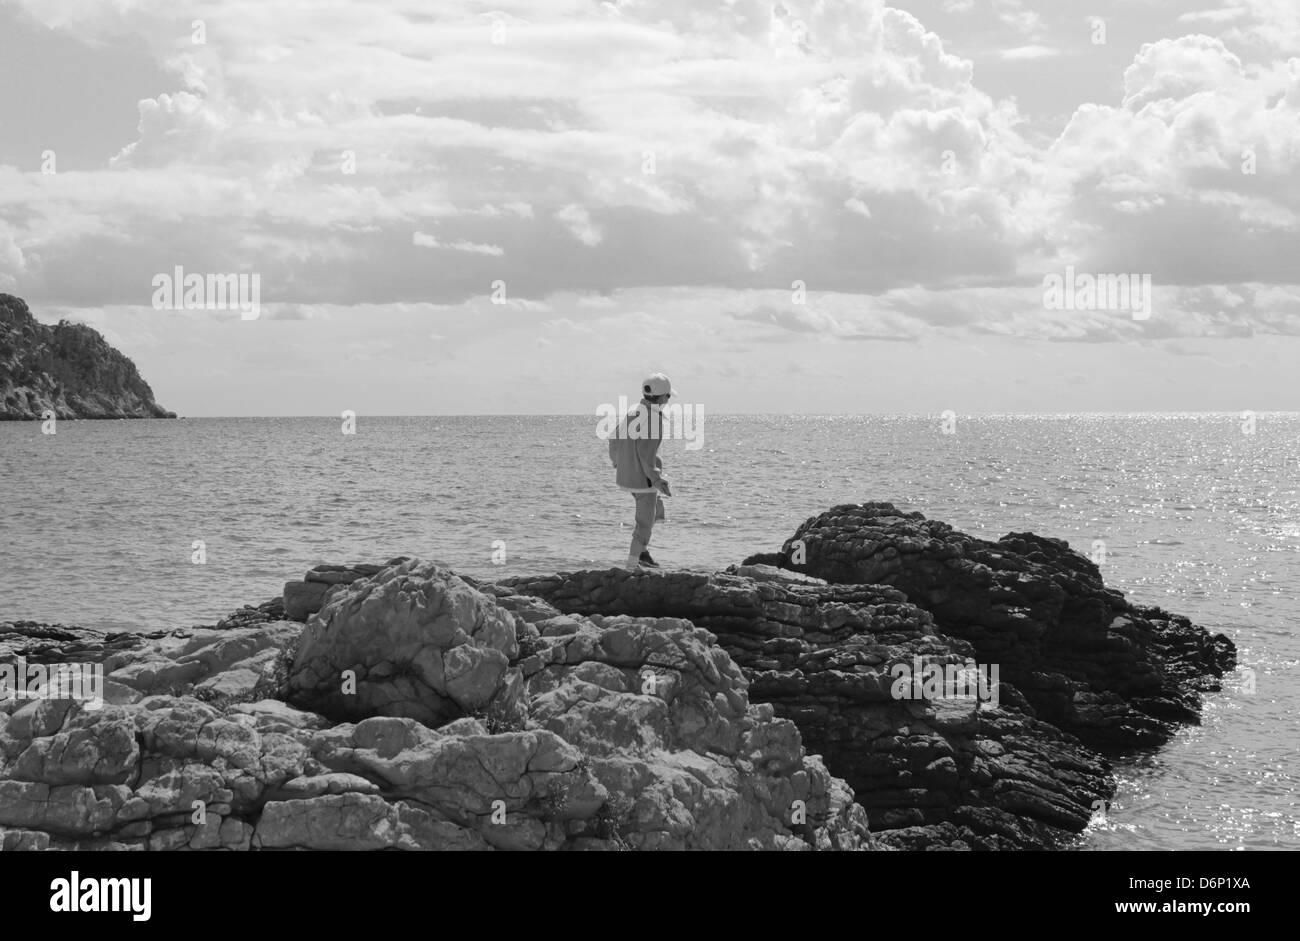 Boy exploring rocks by the sea - Stock Image